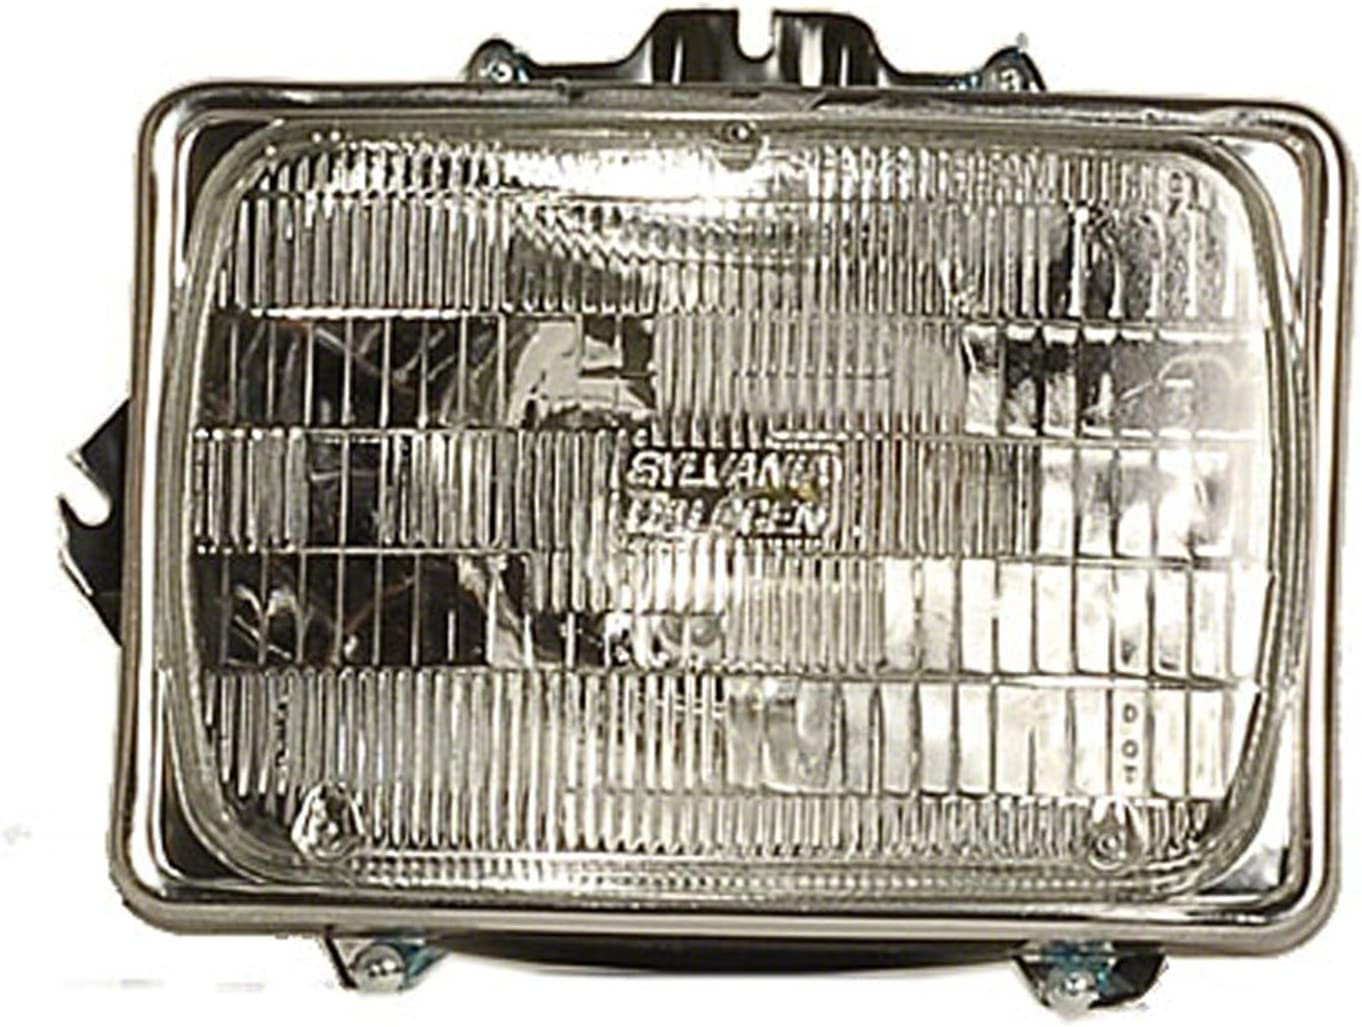 Replaces F5TZ 13201 AB F5TZ 13200 AB ; For 1992-1996 Ford Bronco Pair Driver and Passenger Side Parking Light Lens and Housing Only FO2520116 FO2521114